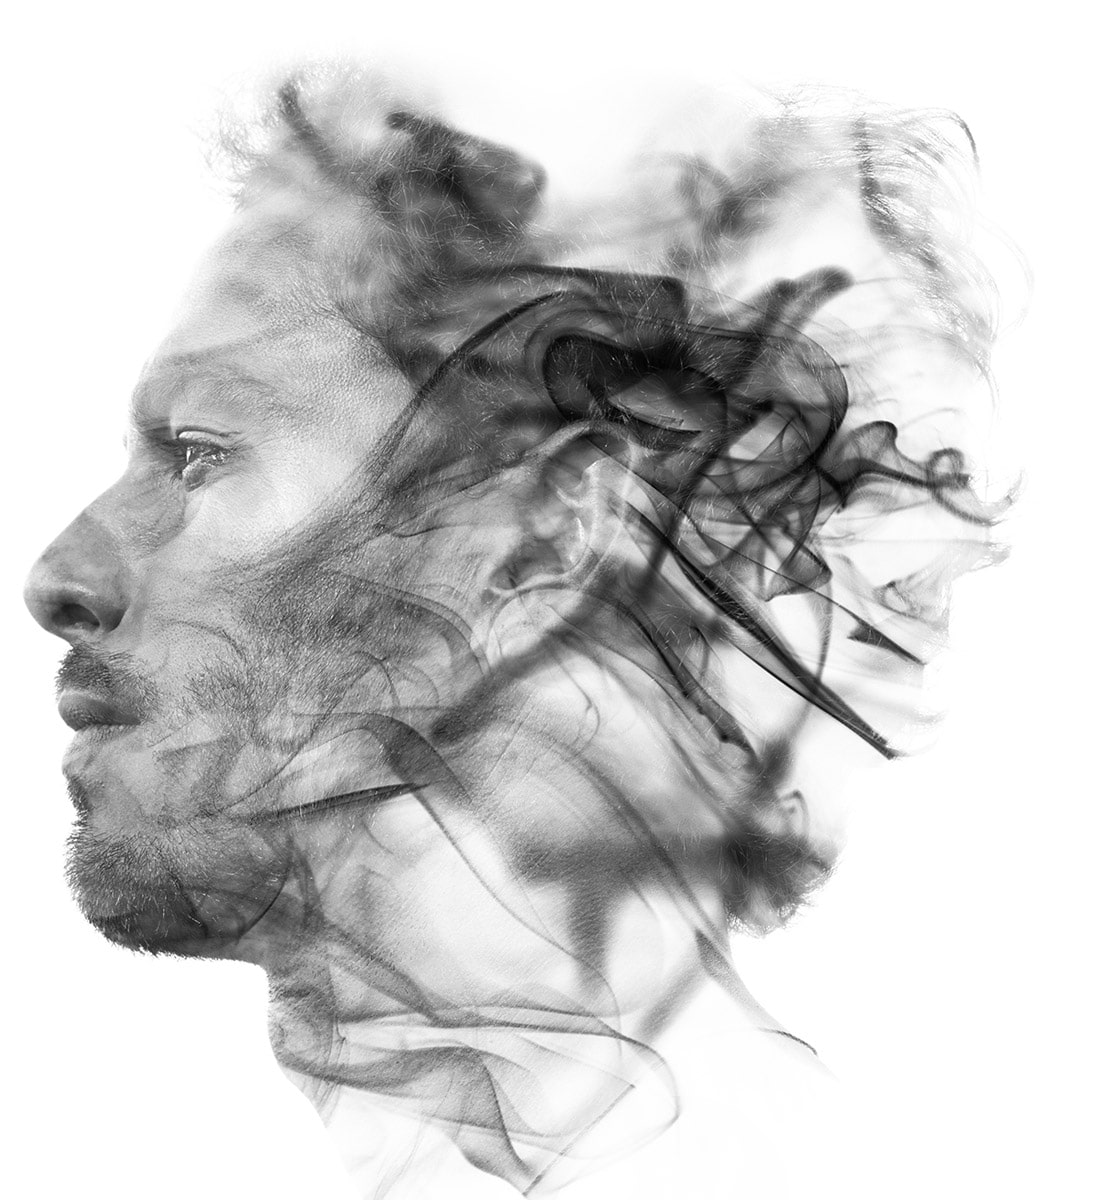 Double exposure of a man feeling peaceful after auricular acupuncture